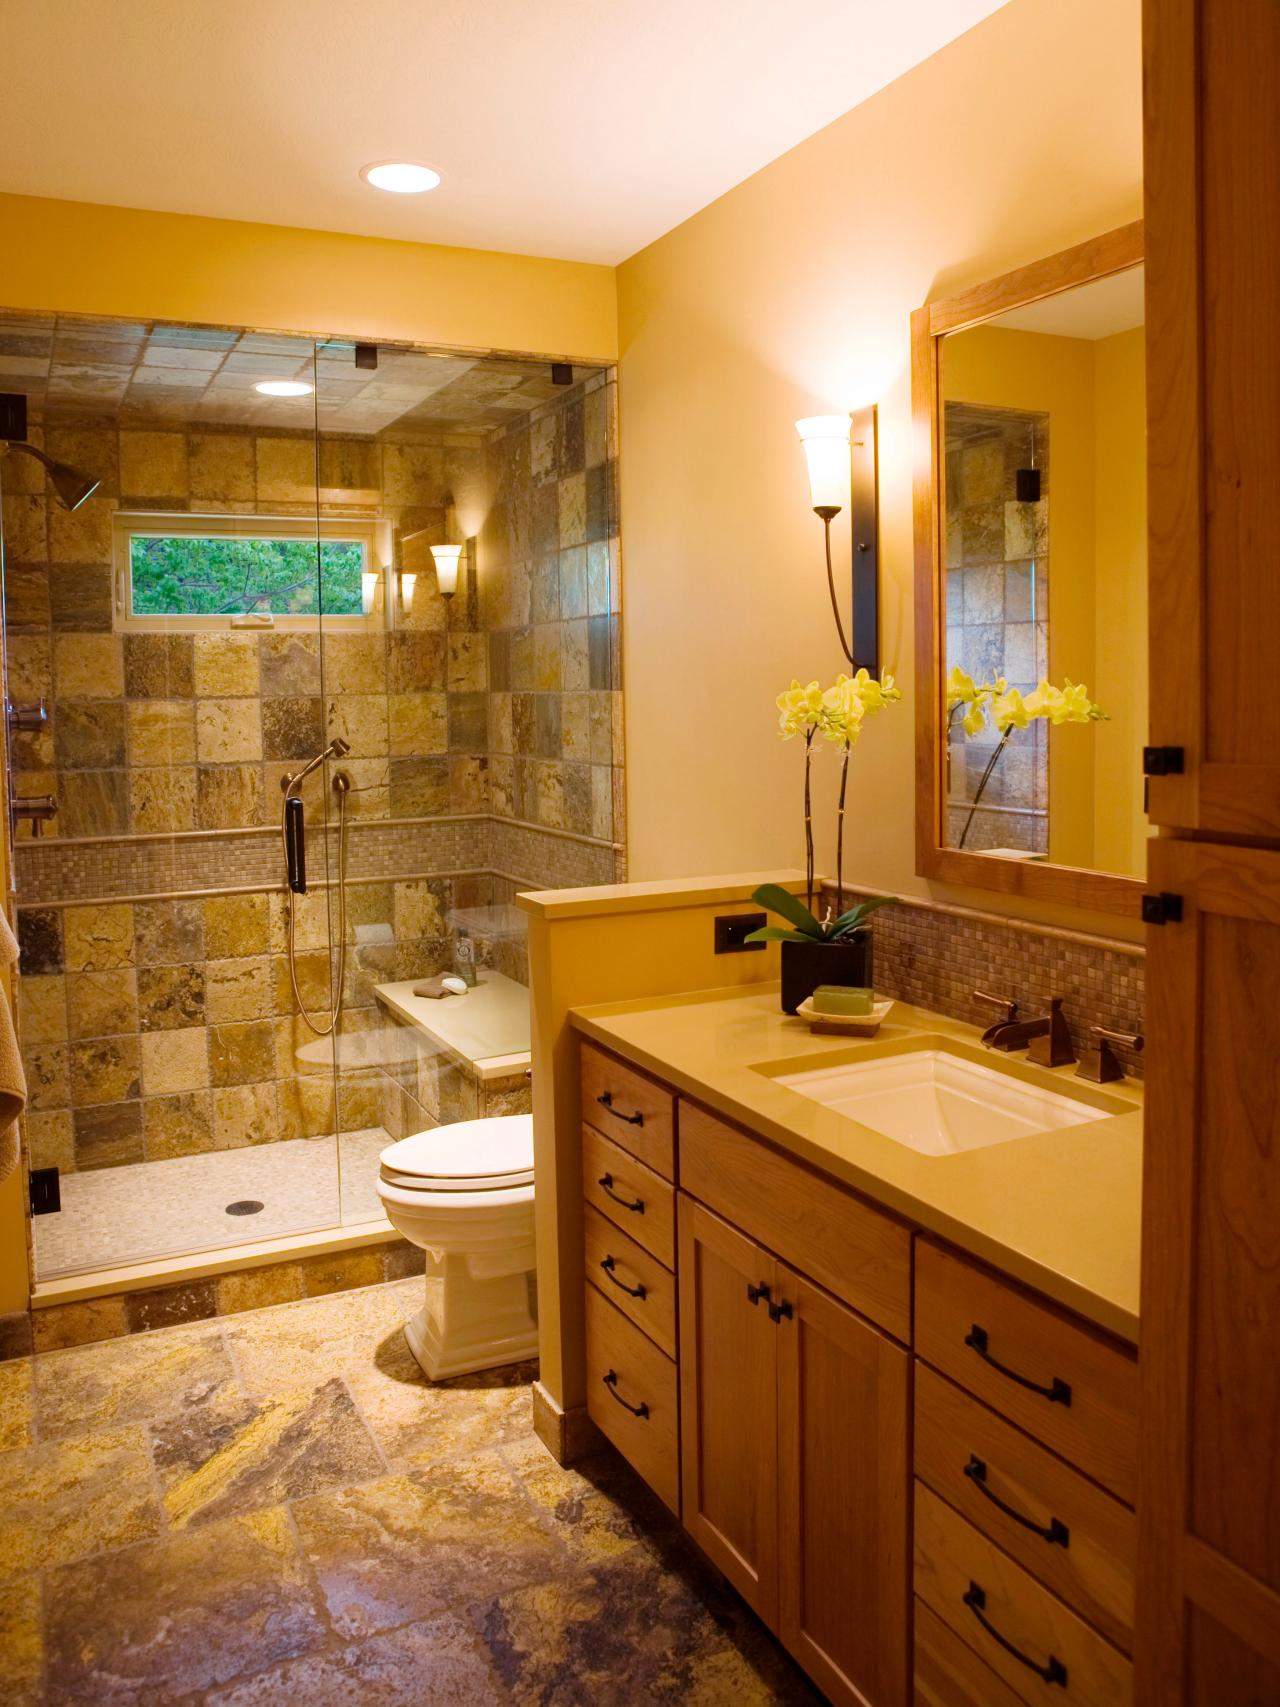 add classy details for character - Bathroom Remodel Designs